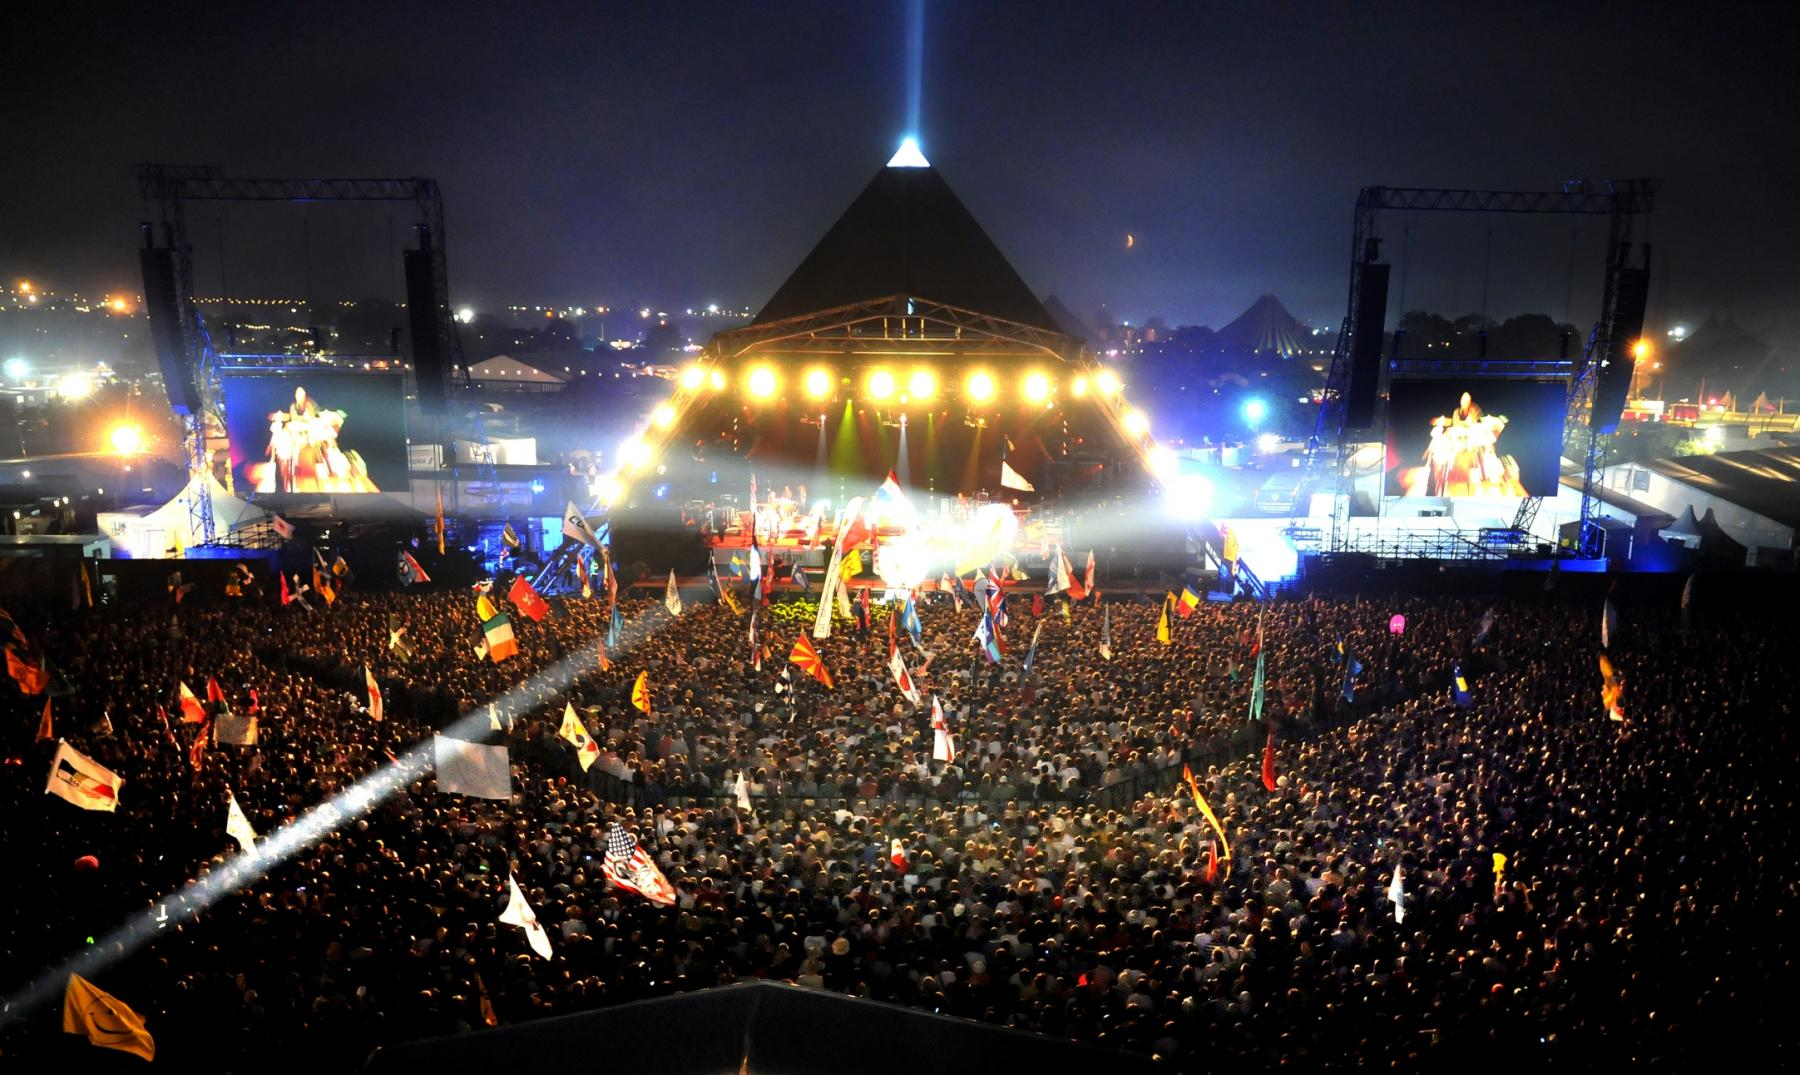 Crowd at Glastonbury Festival Pyramid Stage at night